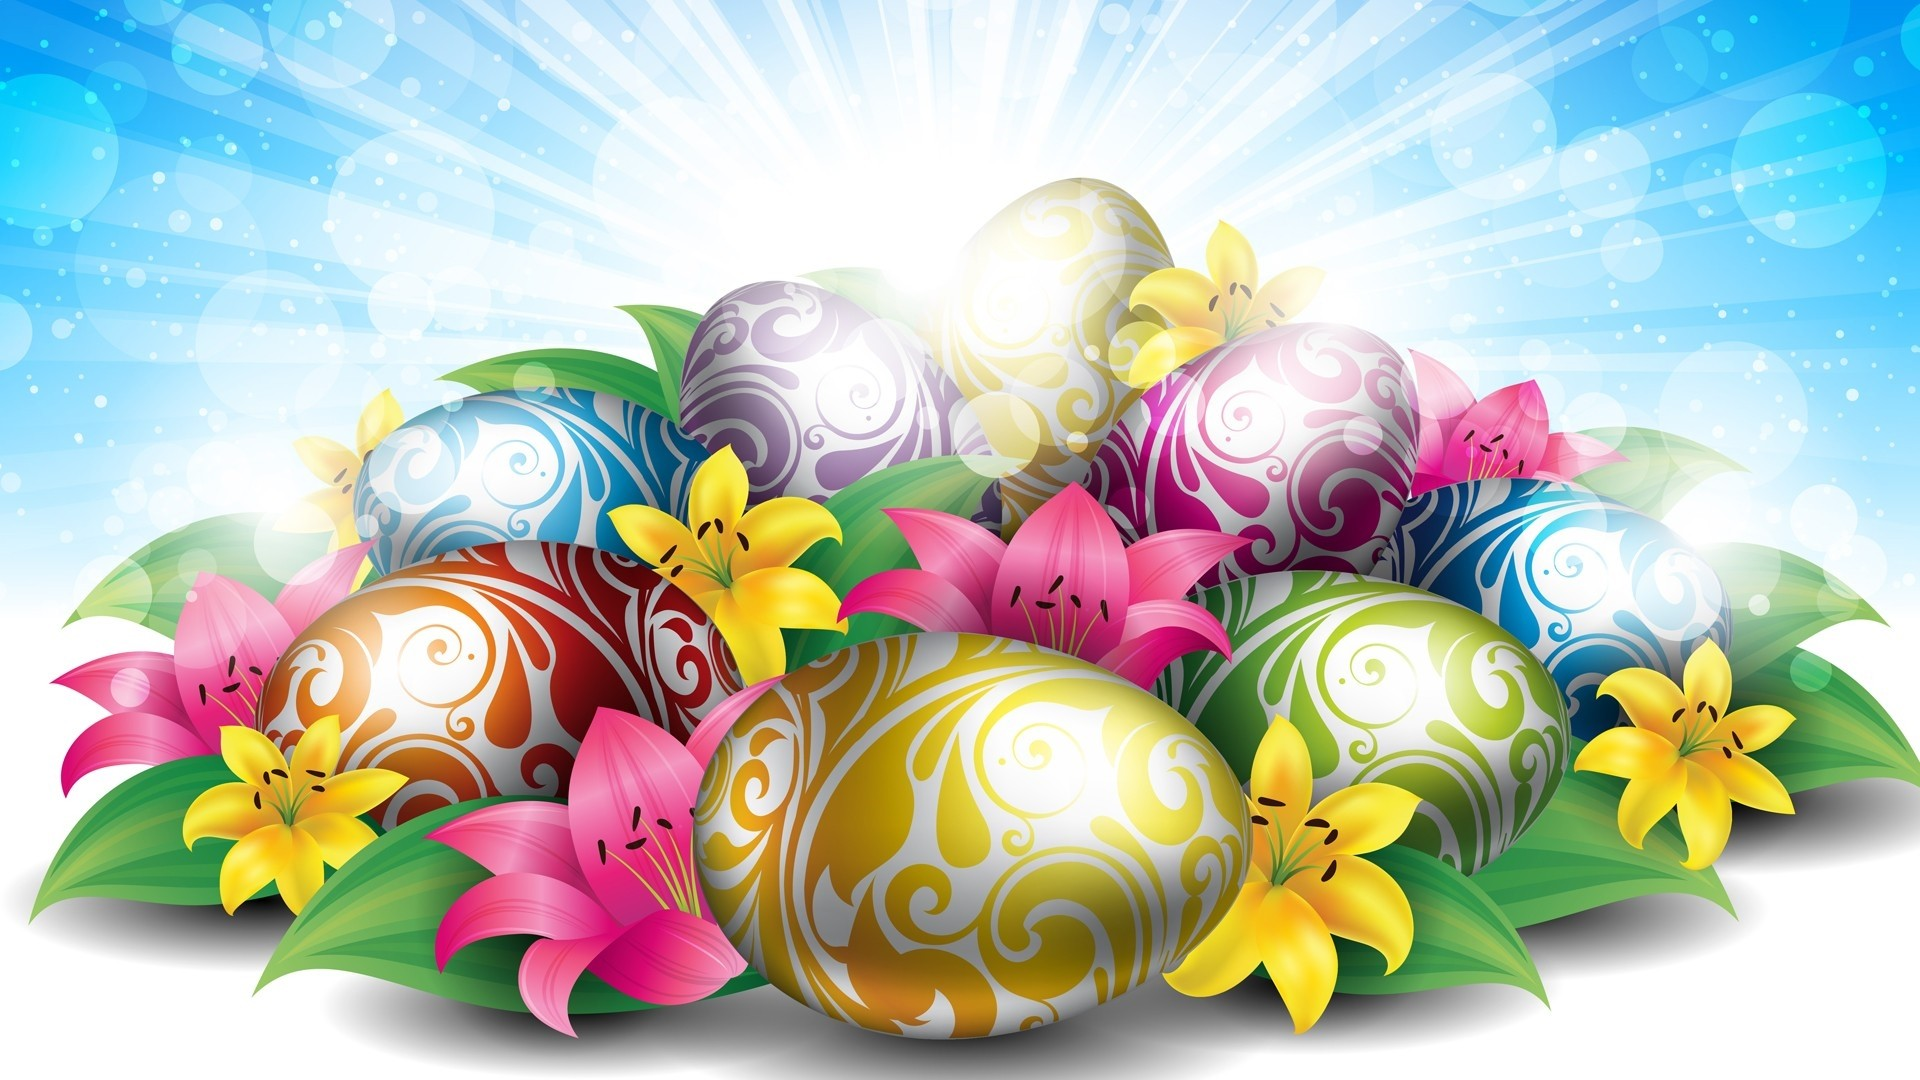 Easter 2020 Wallpaper Free